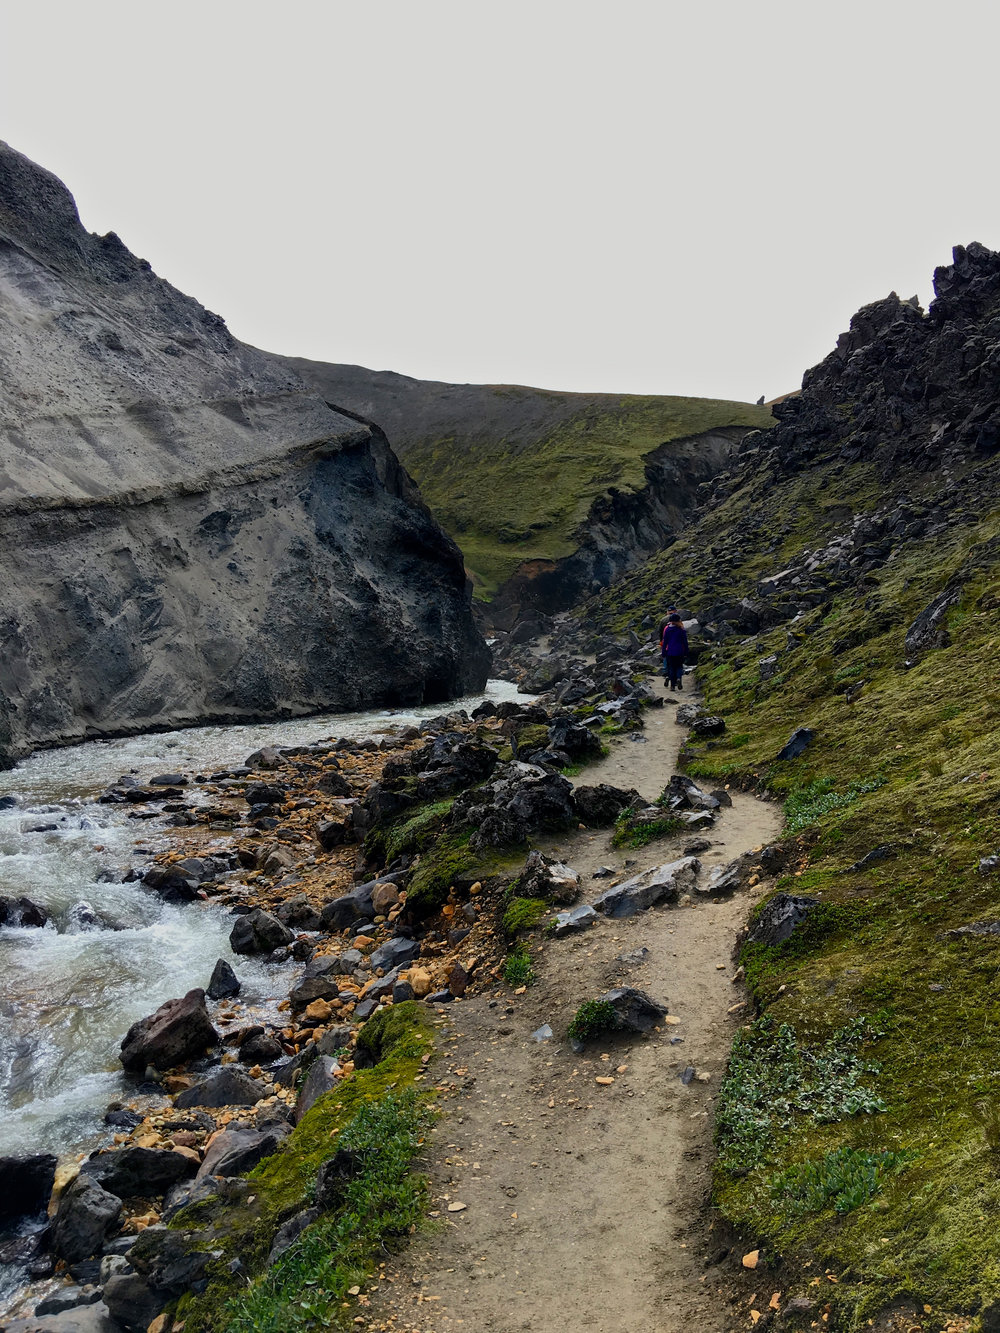 Teri_Iceland_hikes_waterfalls_spiritedtable_photo4.jpg